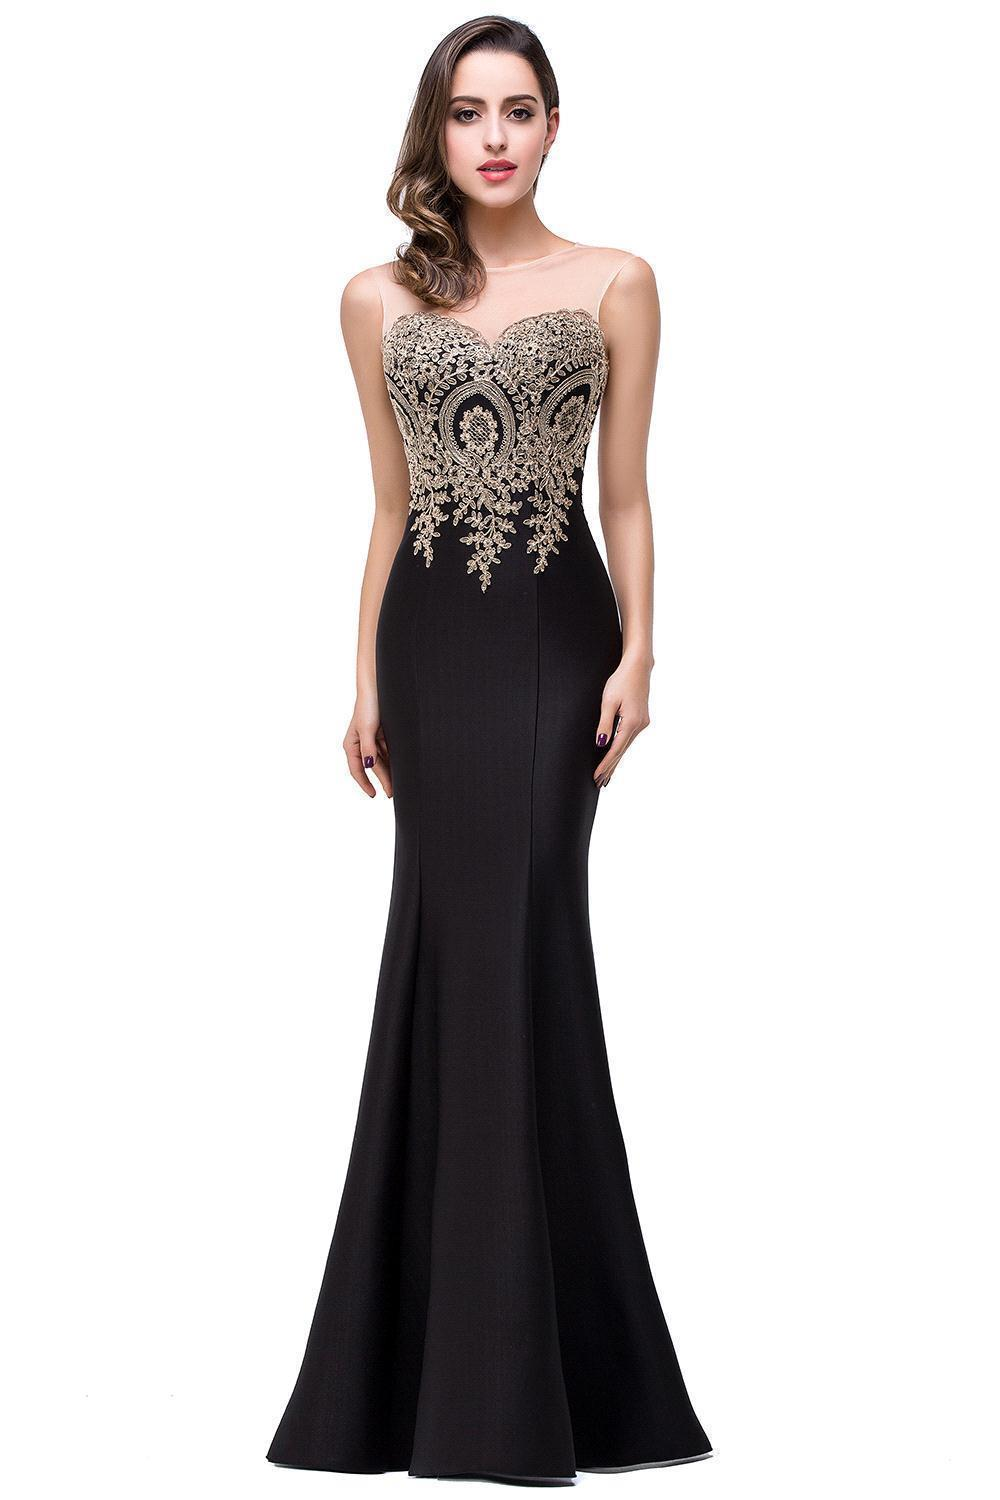 Sexy Backless Appliques Burgundy Mermaid Lace Long Prom Dresses Royal Blue Black Evening Party Dress Vestido